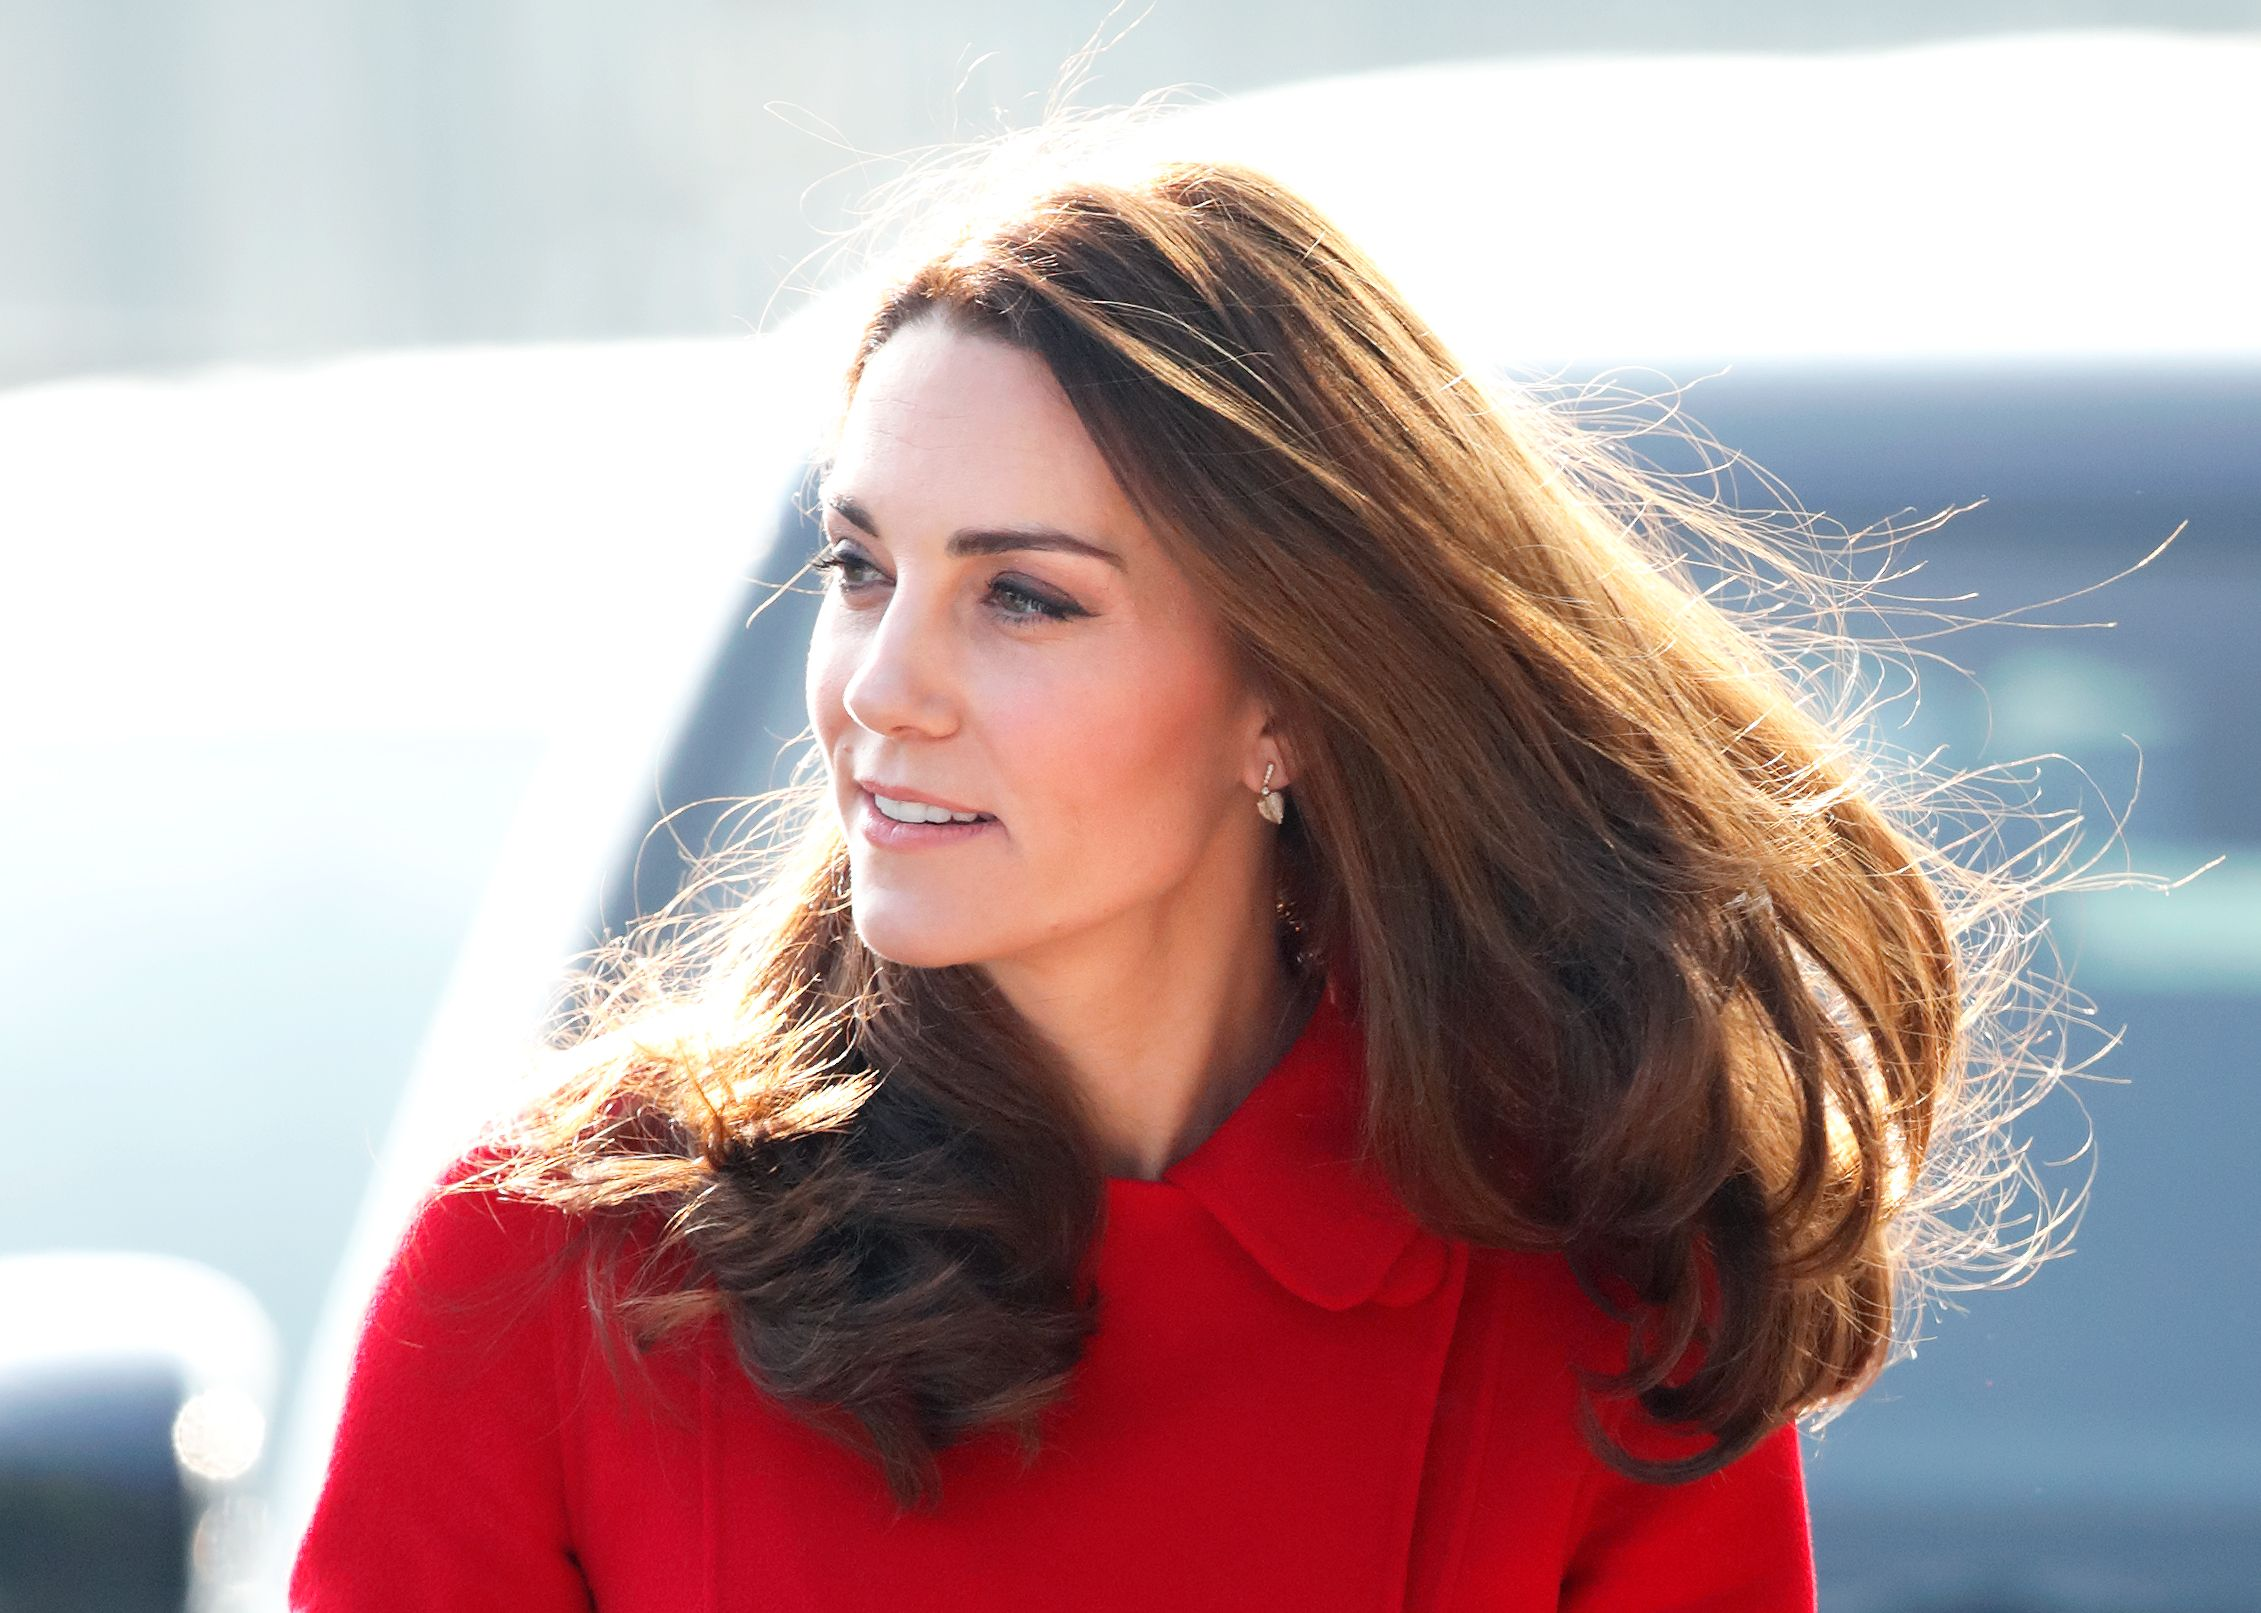 Kate Middleton in a New Needle & Thread Dress Is Stunning at the UK-Africa Summit